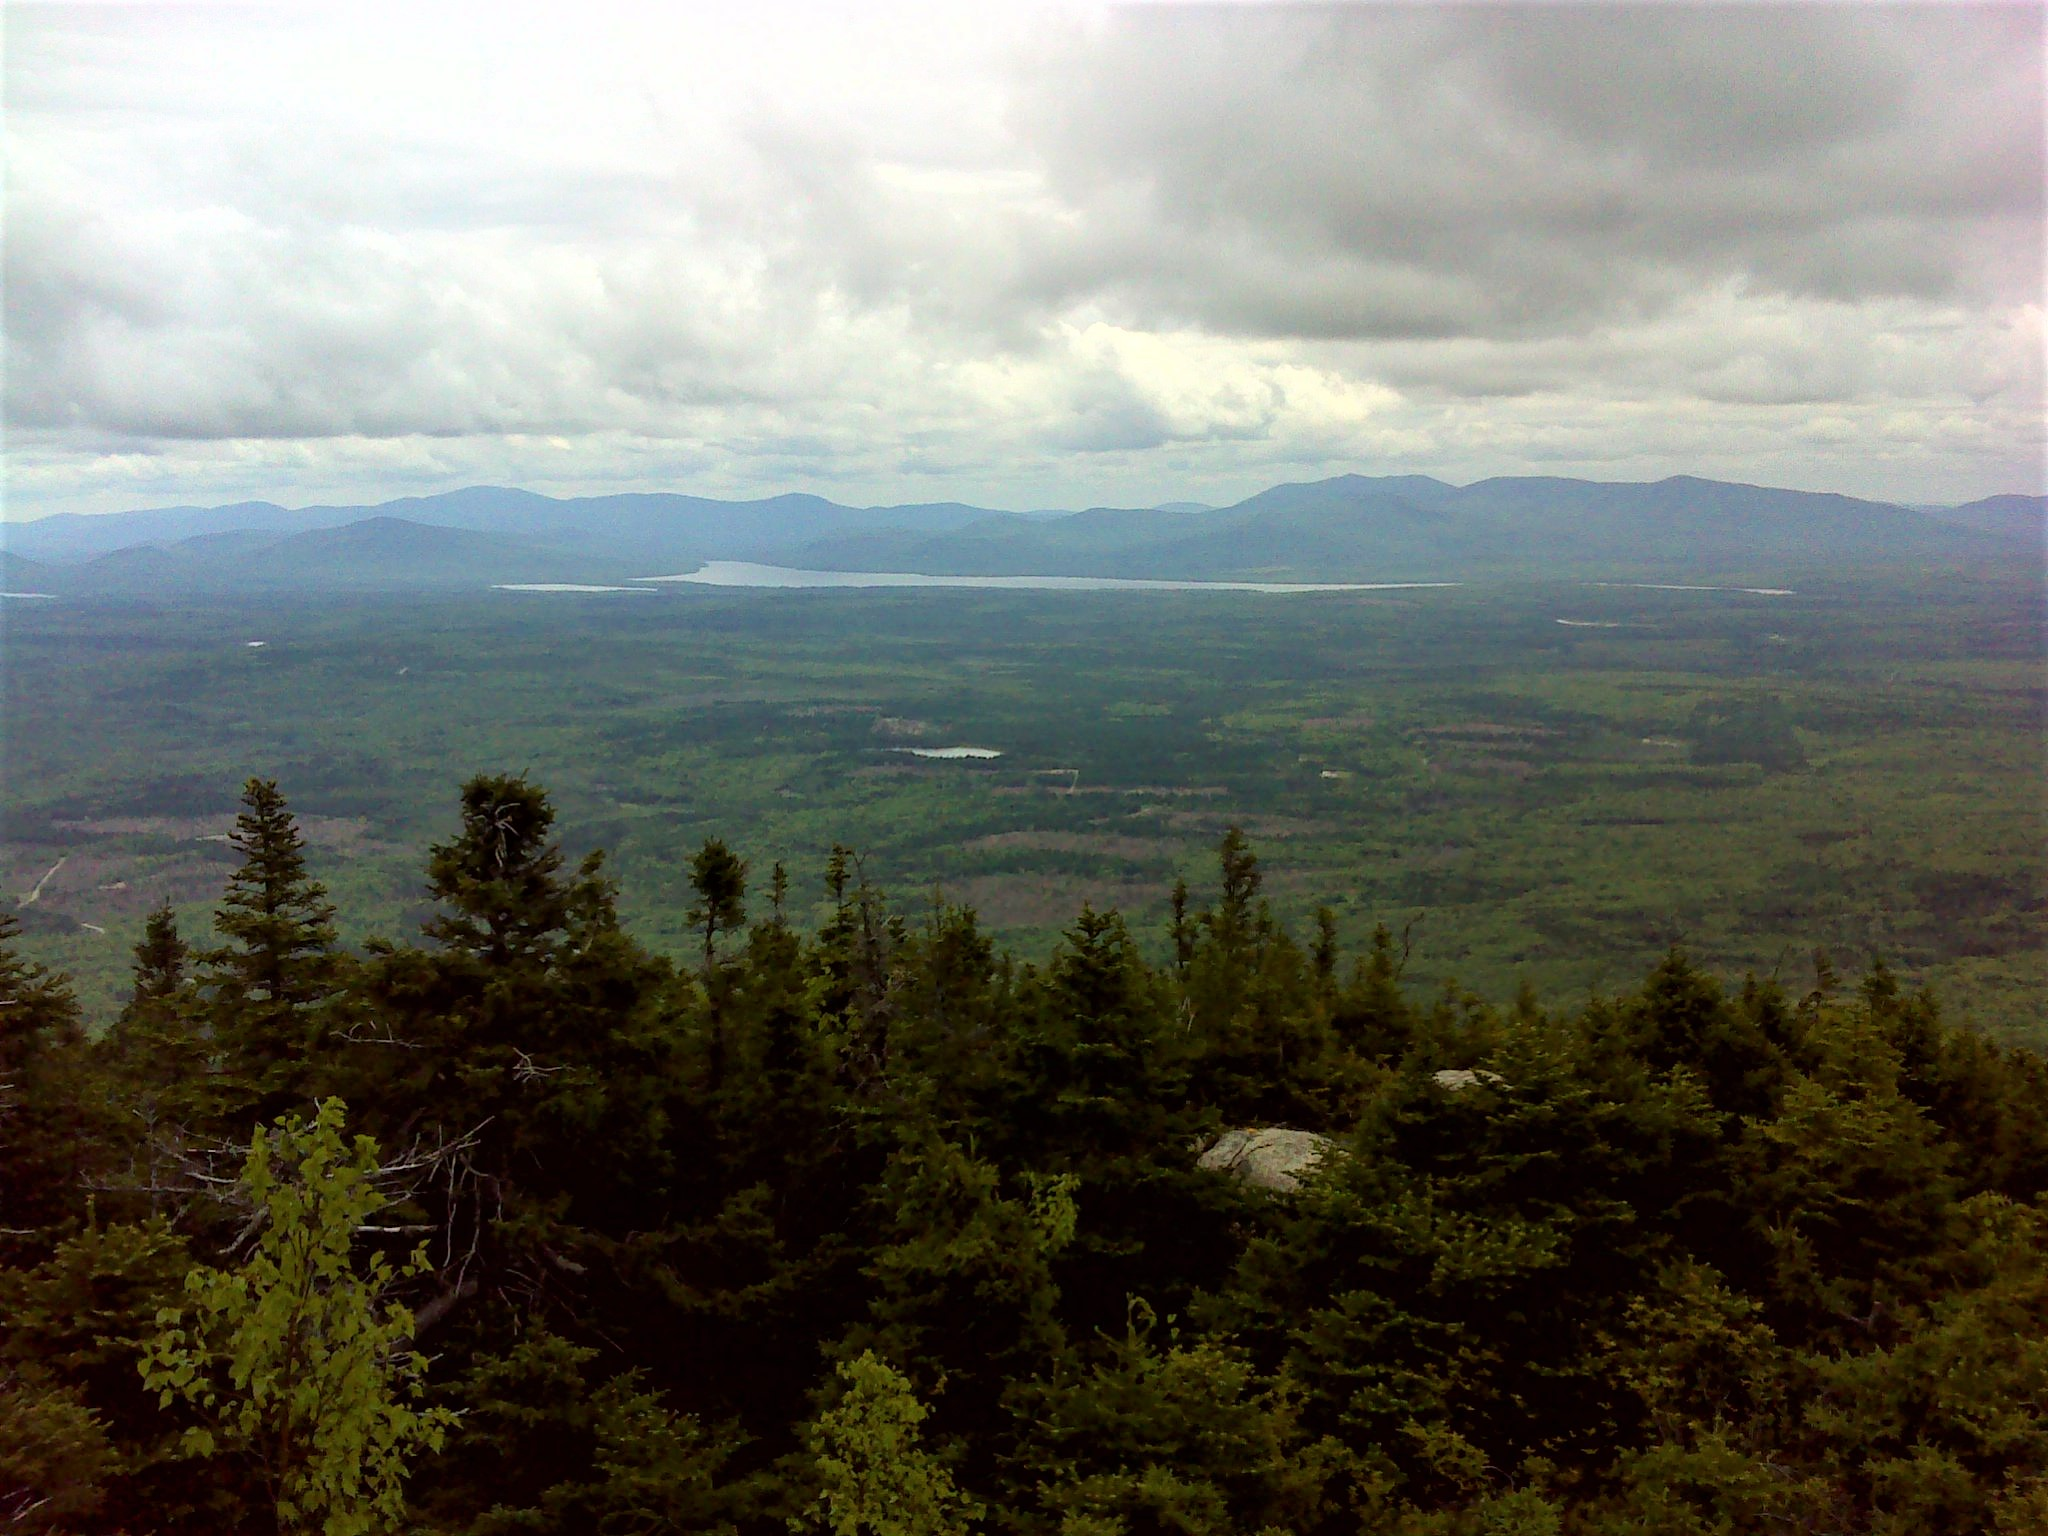 Katahdin and its neighbors from the summit